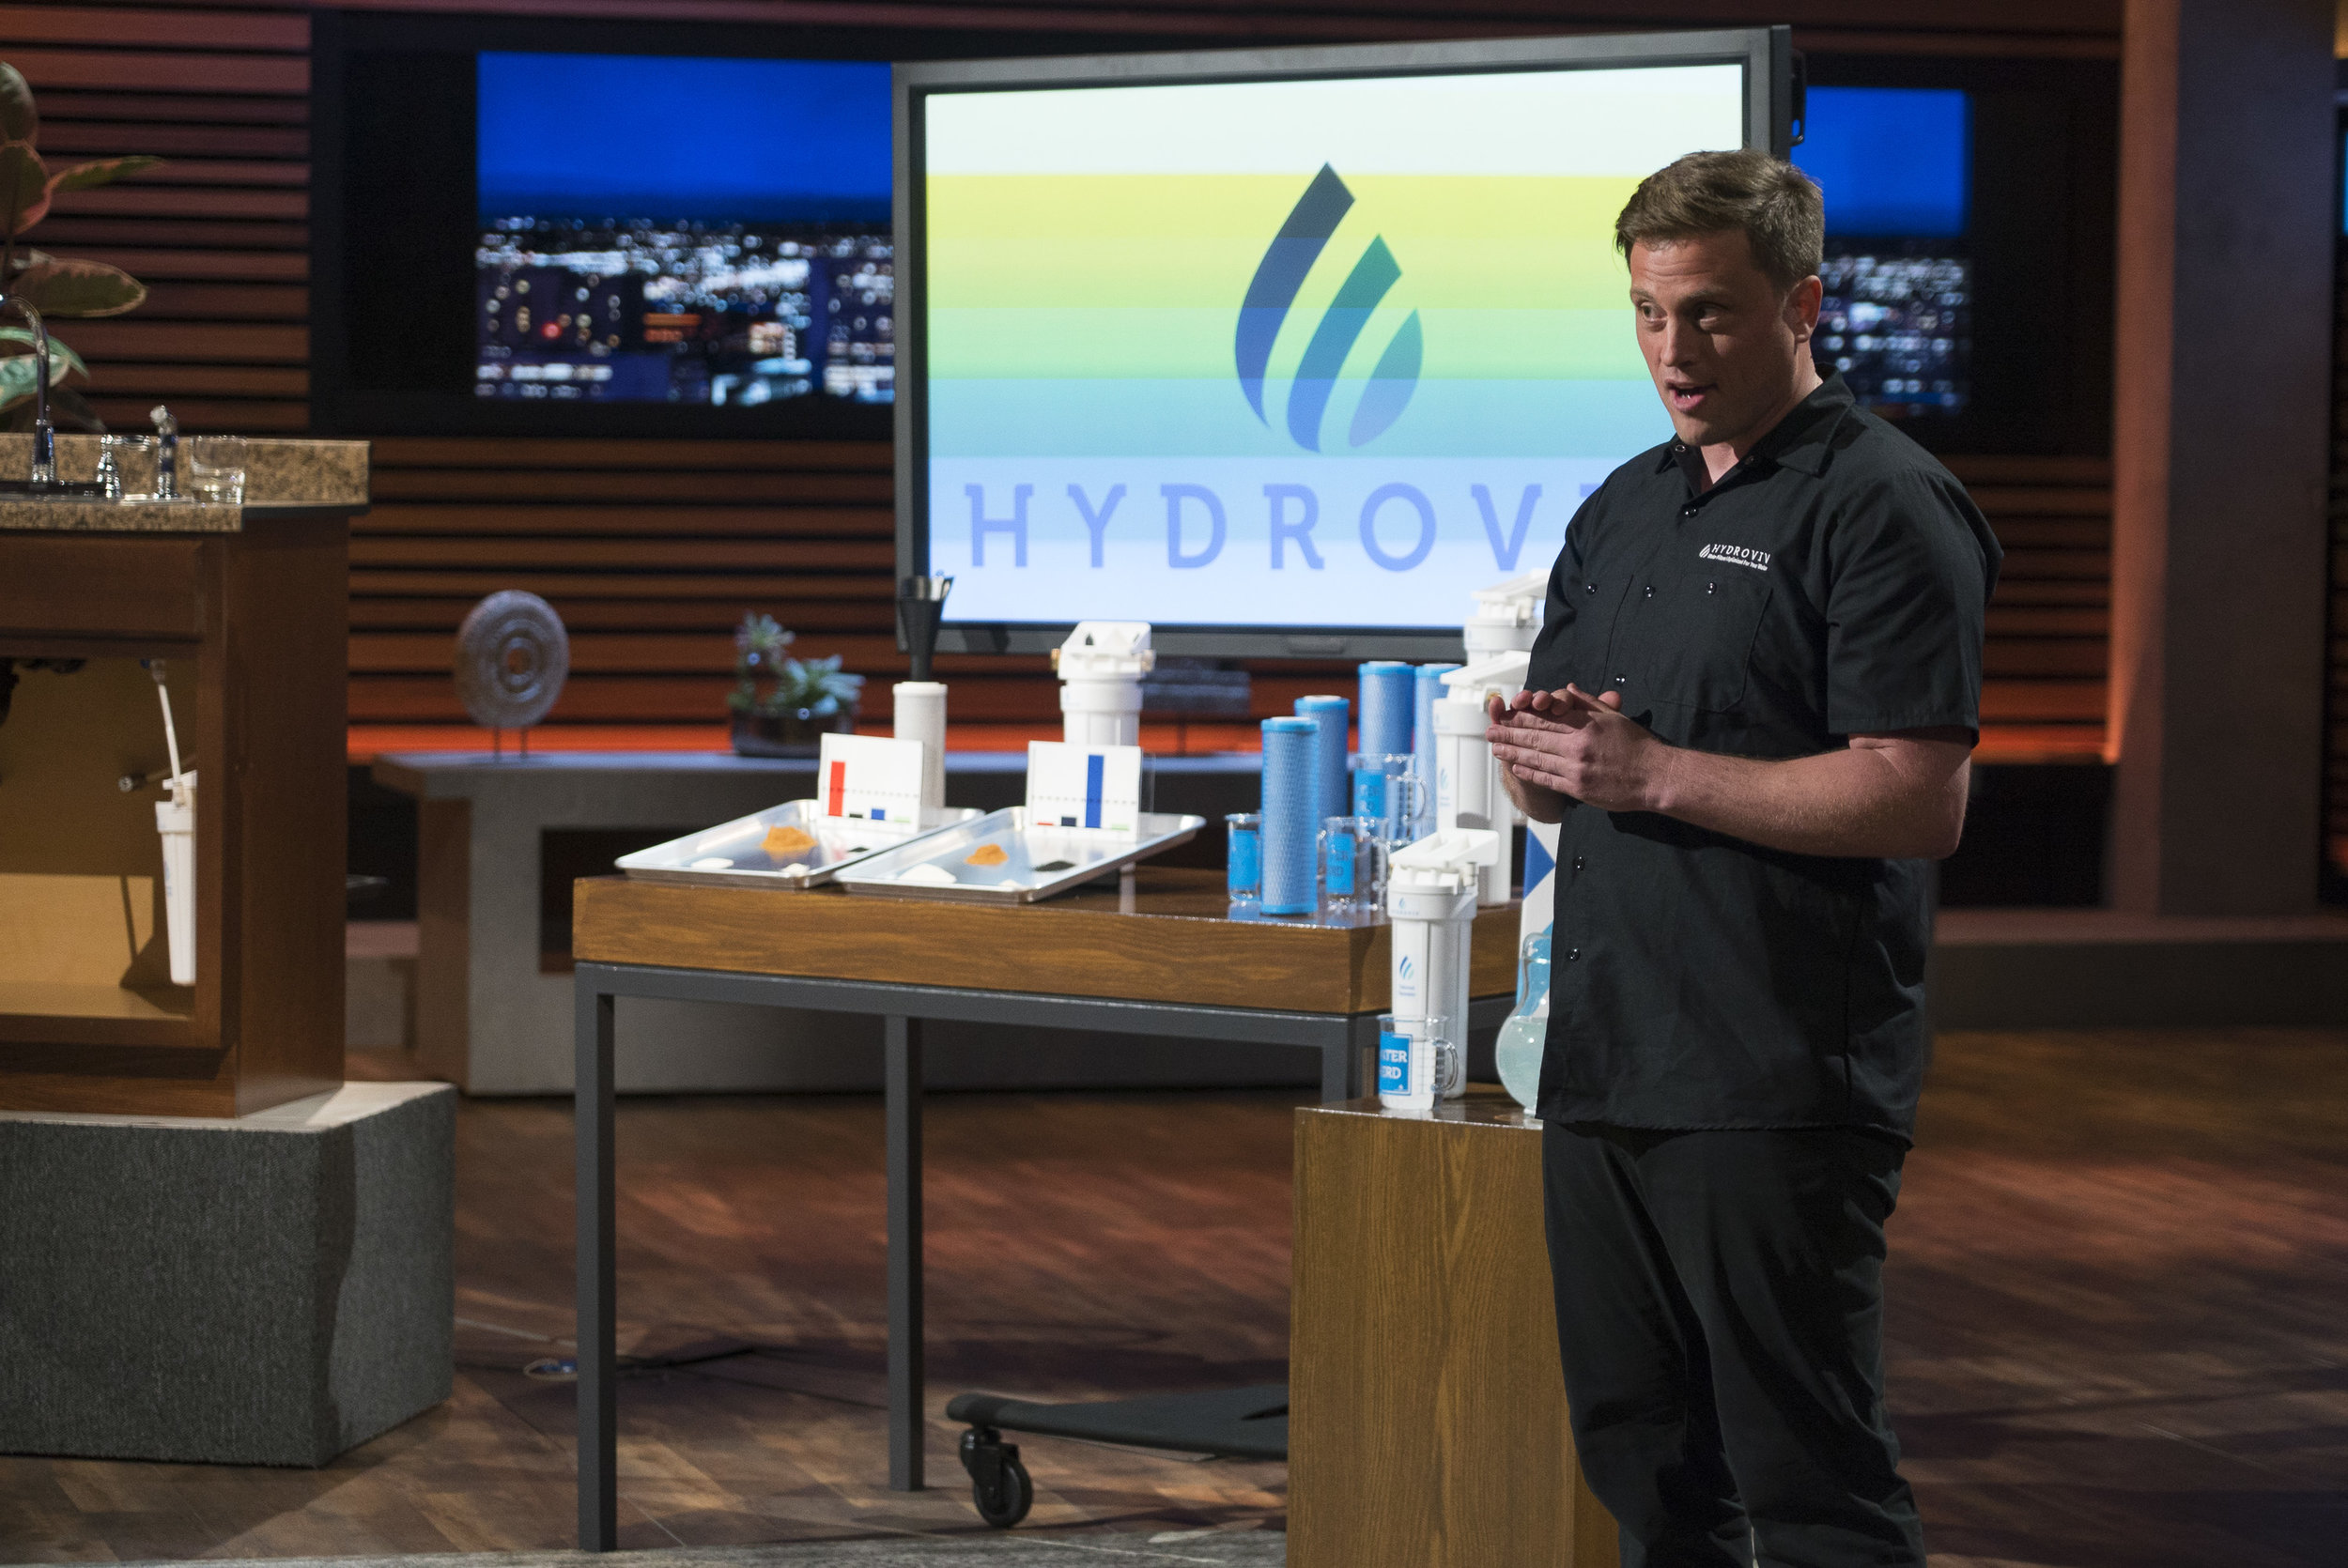 With only 1 week notice to pitch a Shark Tank appearance by clean water client,  Hydroviv , Carnes&Co. secured coverage in 10 local and national outlets including  CNBC . The appearance, airing during prime time on ABC, netted Hydroviv a deal with Mark Cuban for $400,000 for 20% equity in the rapidly growing and industry-breaking company. Inspired by Flint, Michigan's water crisis, Dr. Eric Roy was inspired to engineer customized water filters by region, to keep us all in clean, safe water.